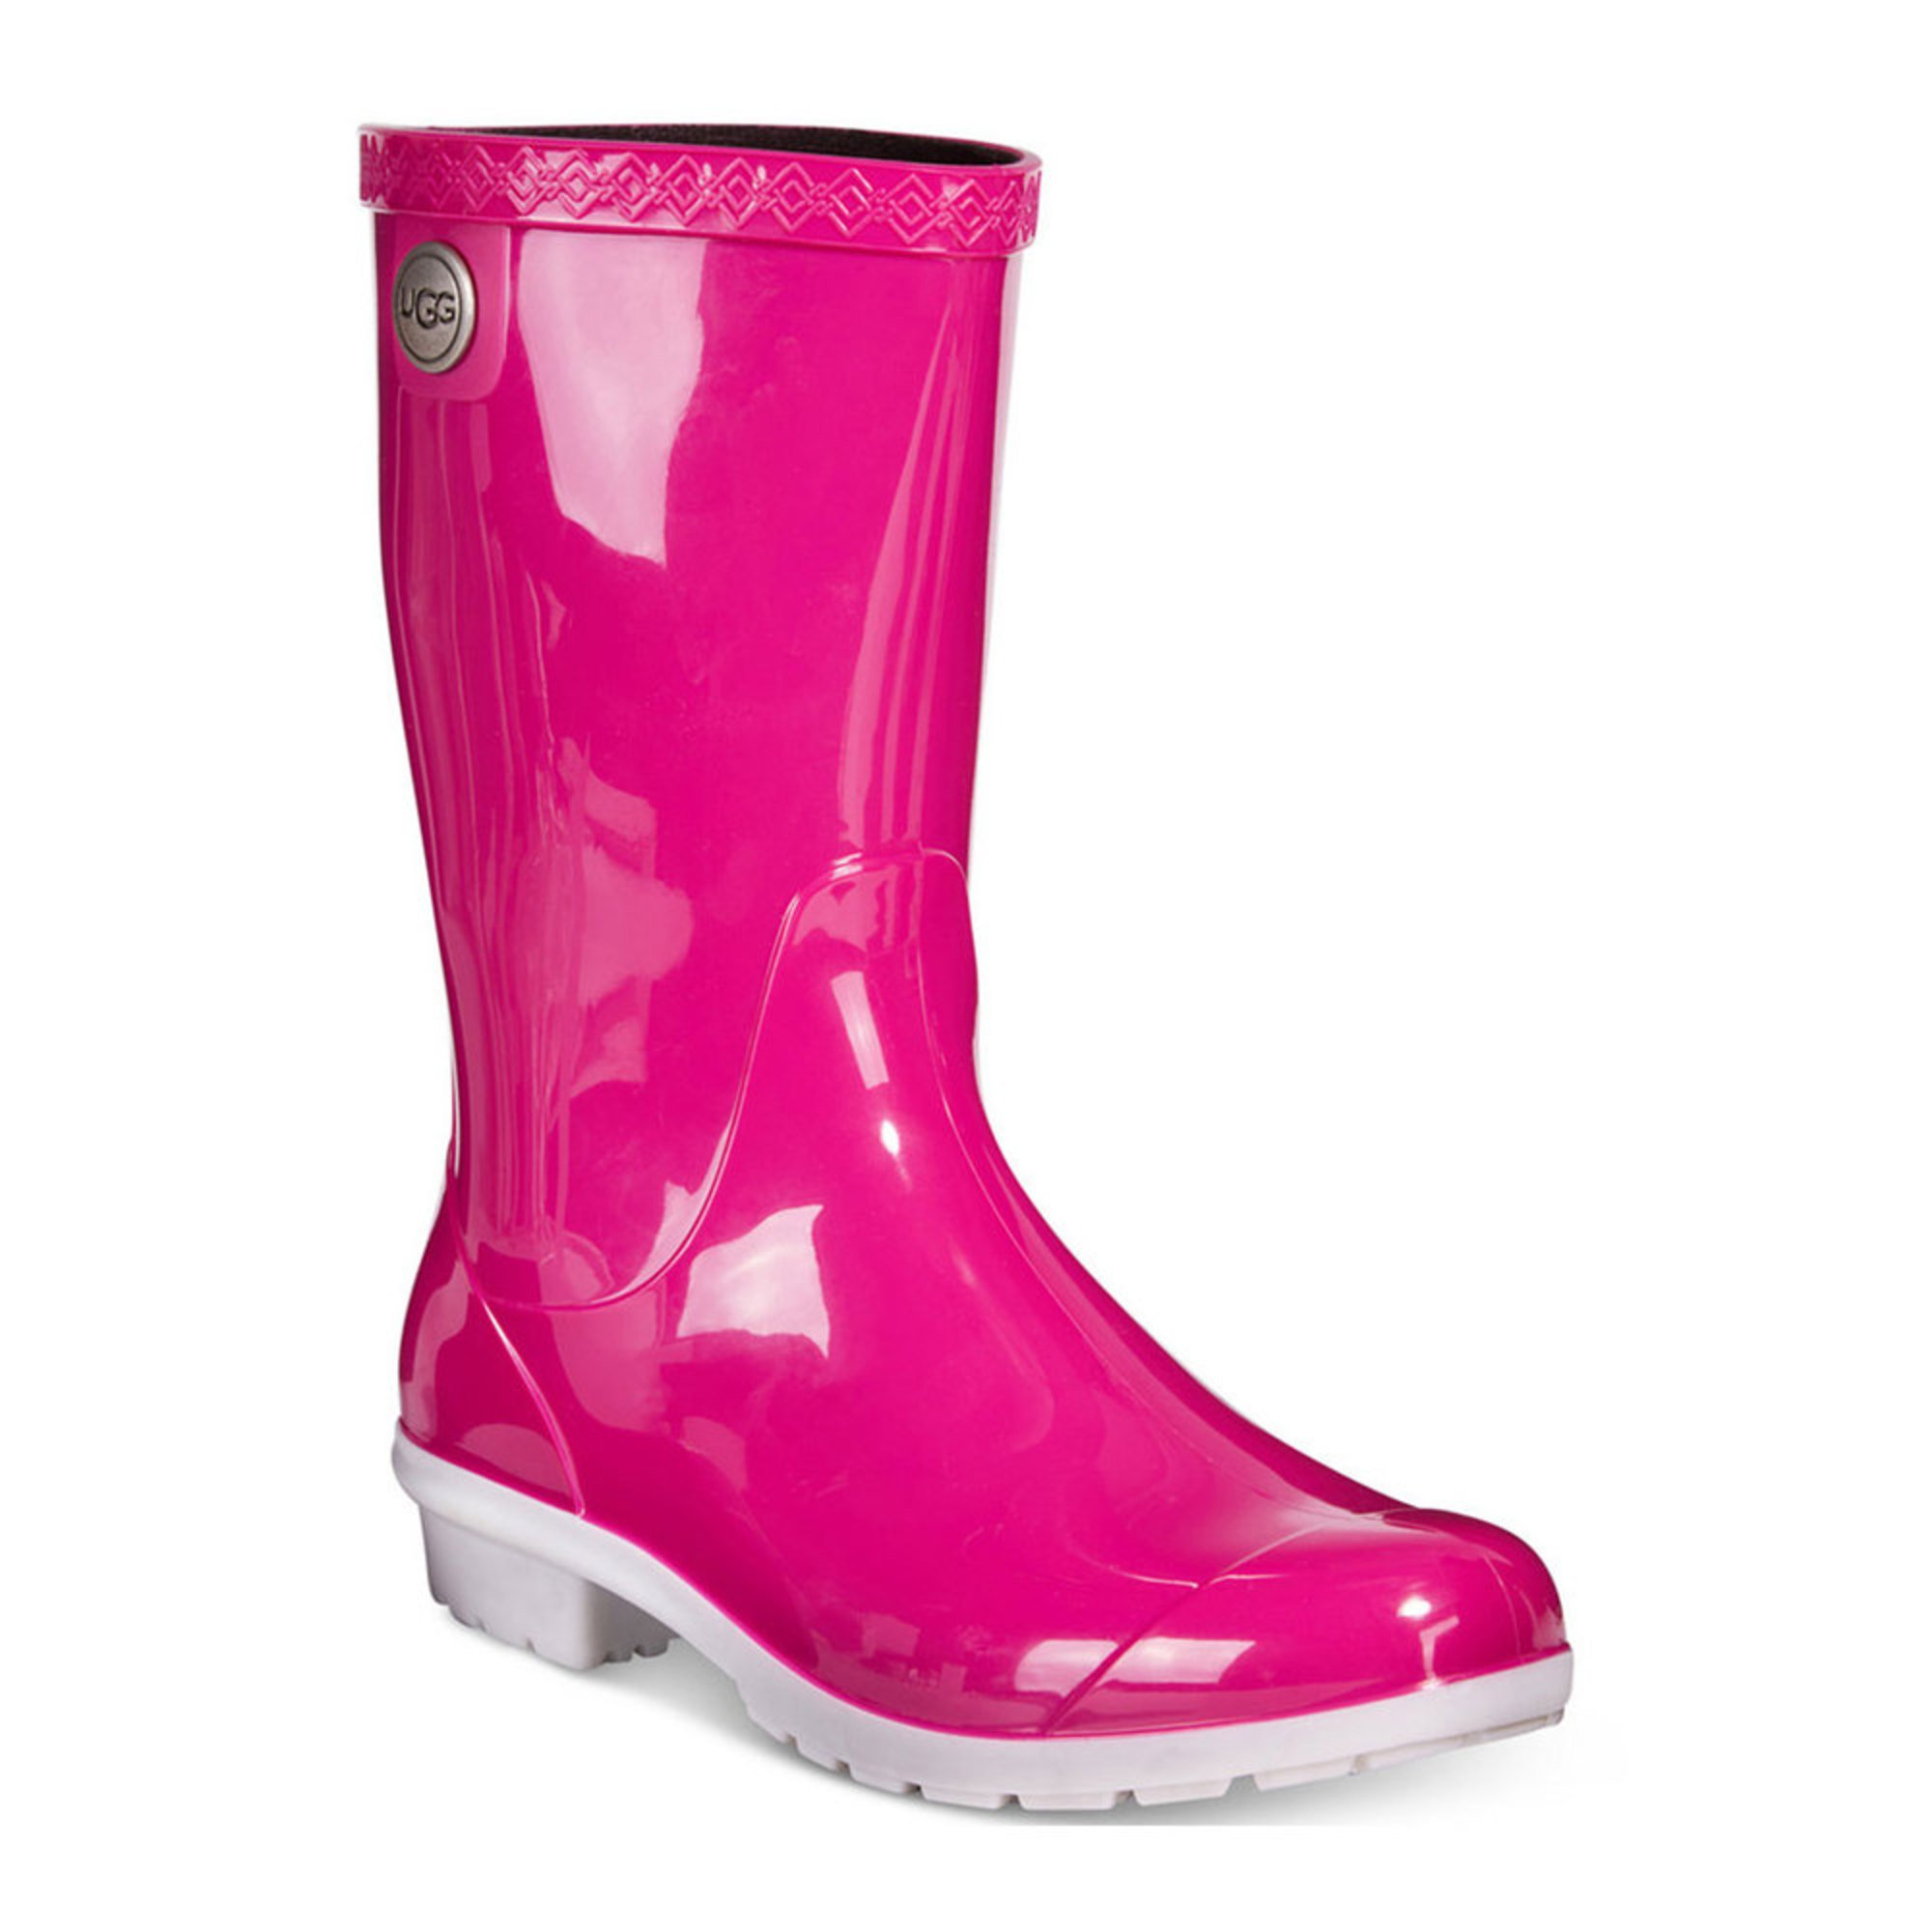 66325fa0299 Neon Pink Sparkle Uggs - cheap watches mgc-gas.com